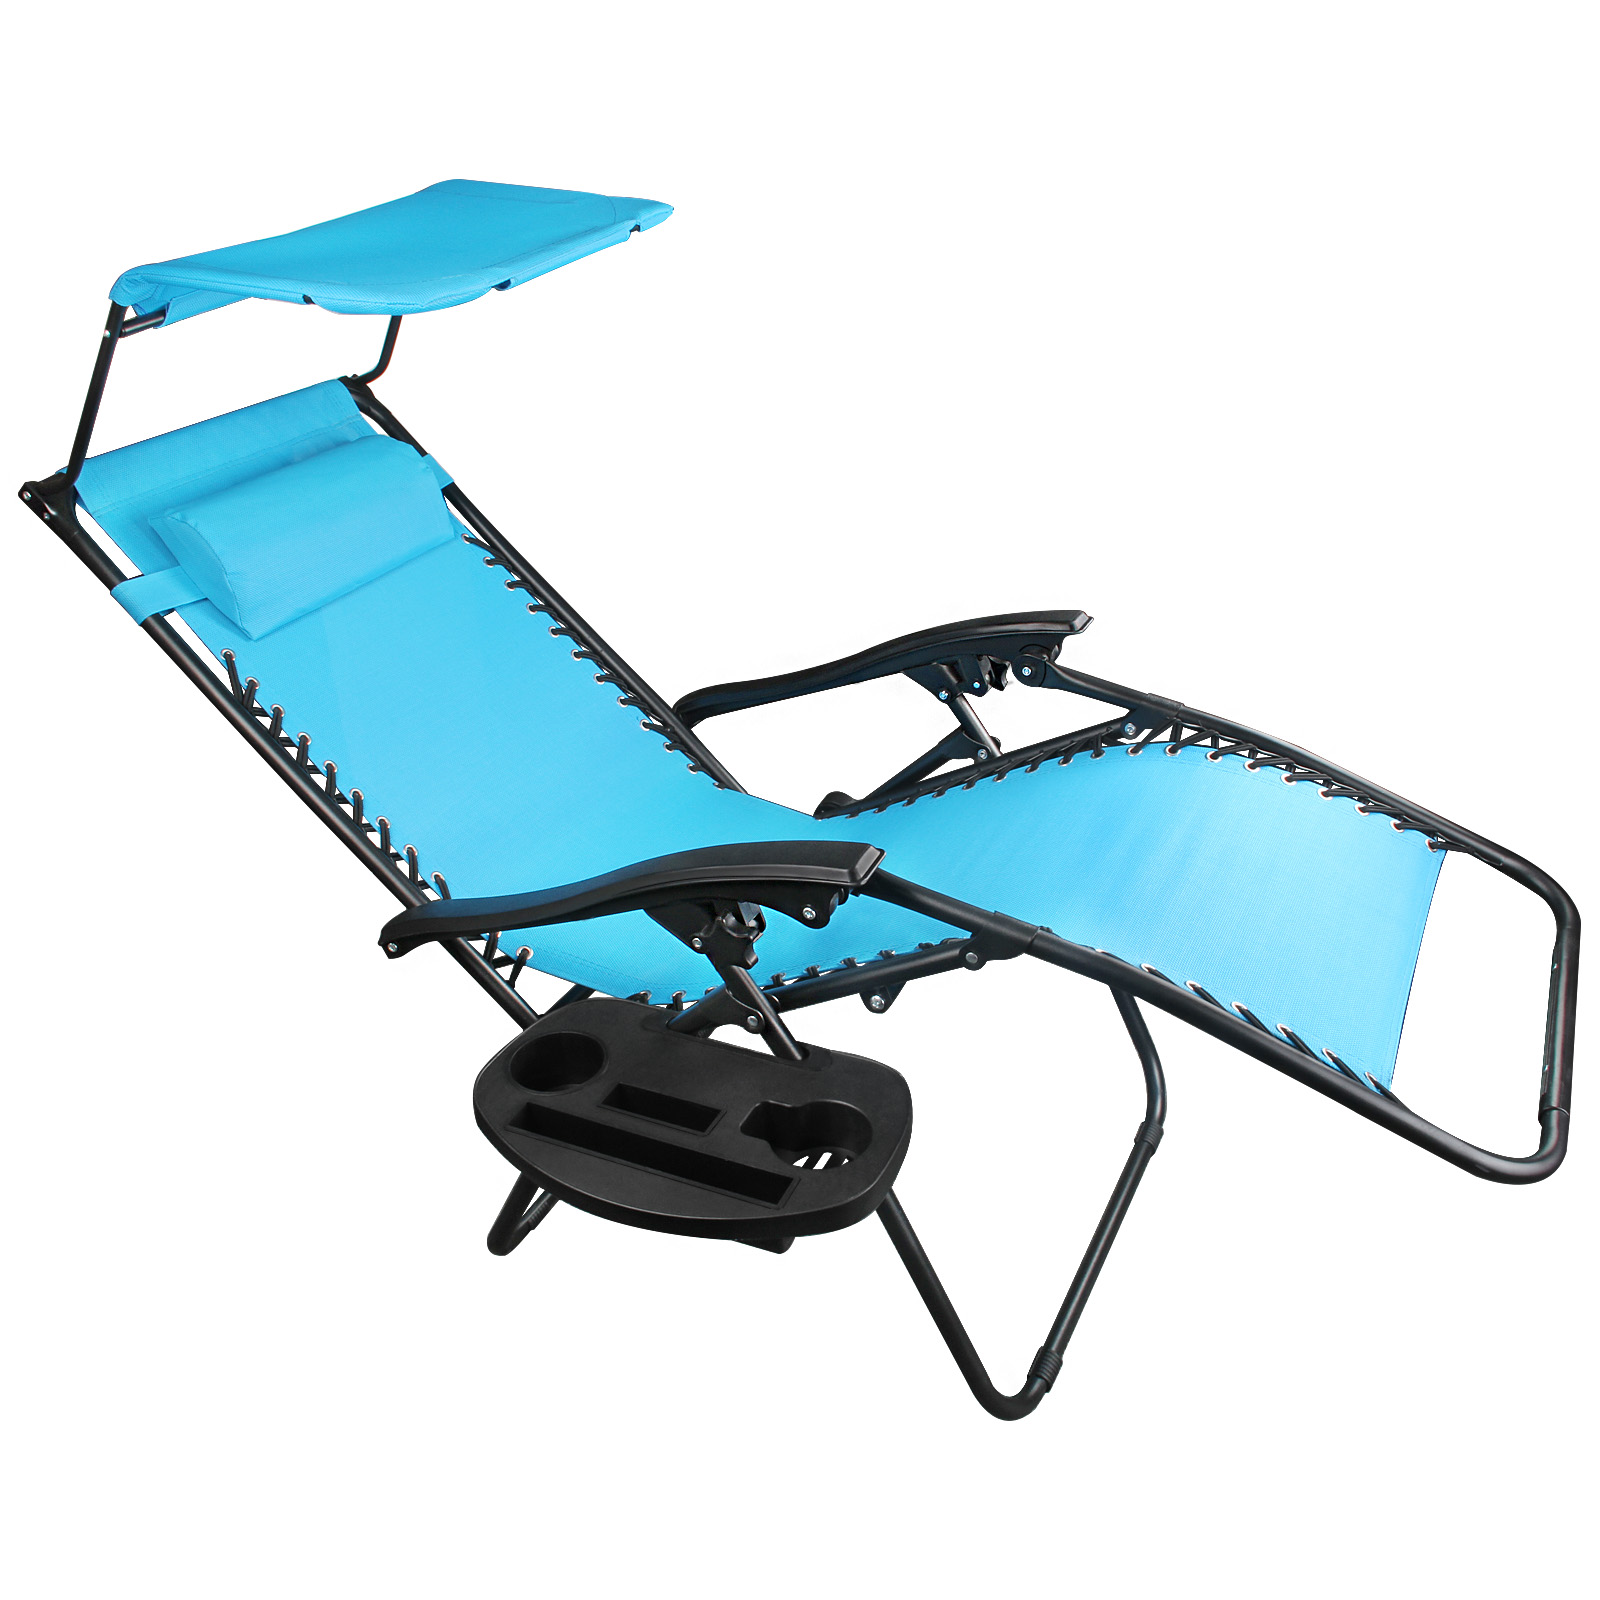 Details About Zero Gravity Chairs Case Blue Lounge Patio Chair Outdoor Yard Beach Pool